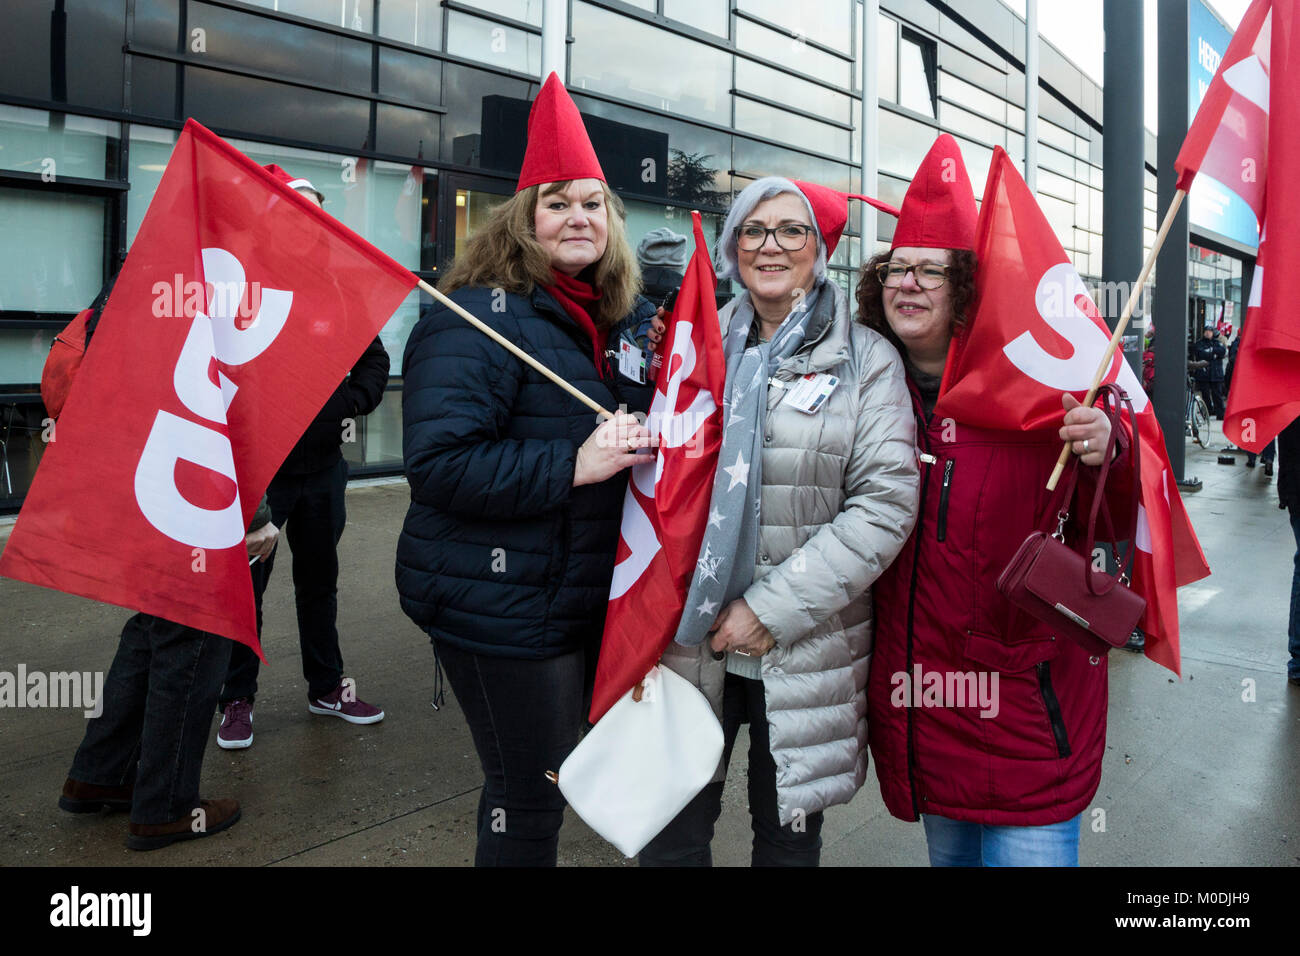 Bonn, Germany. 21 January 2018. Party members outside the convention centre protesting against a possible grand - Stock Image